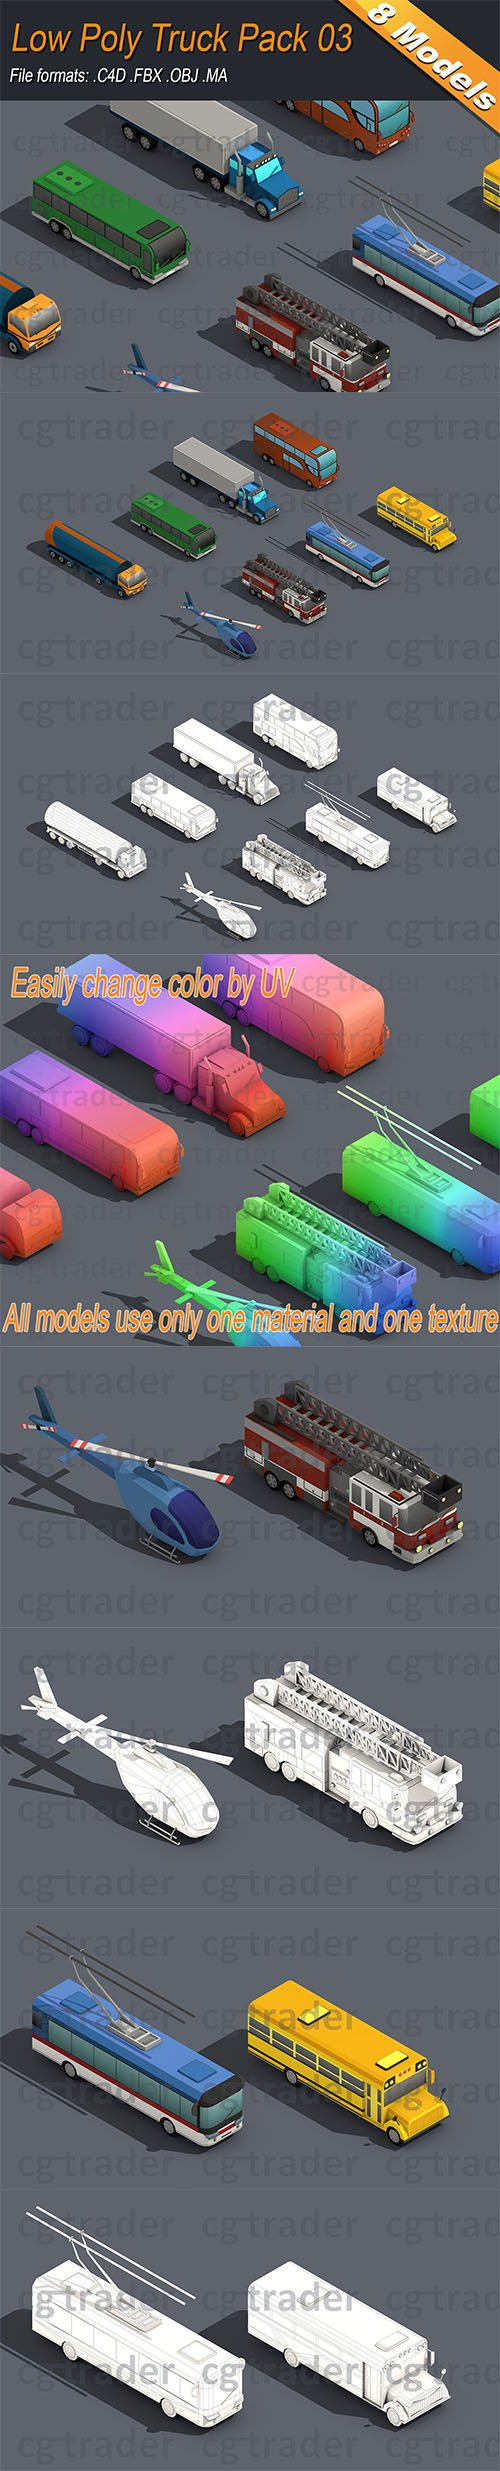 Low Poly Truck Pack 03 Isometric Low-poly 3D model